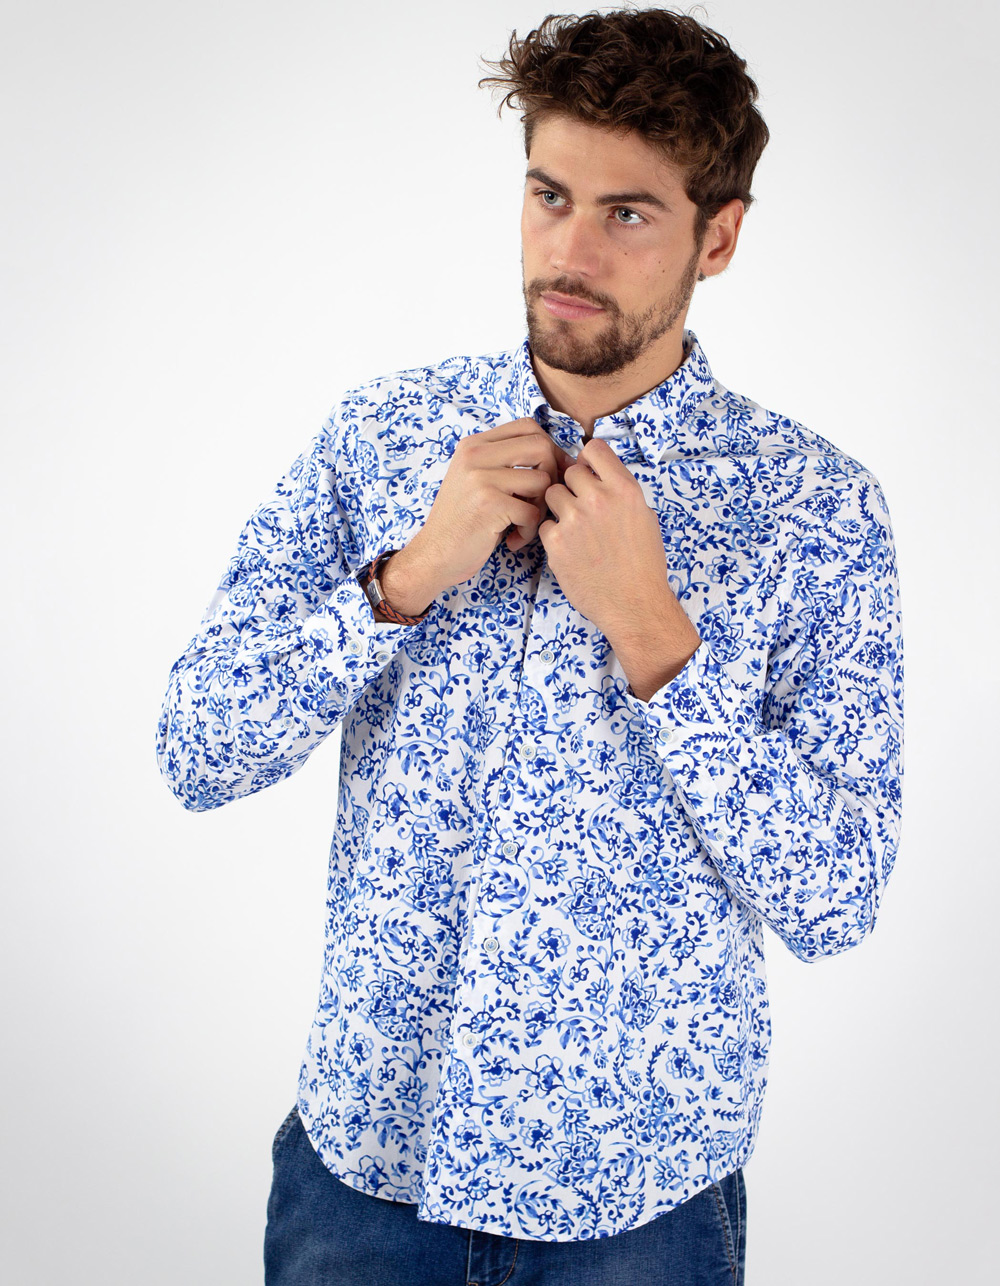 Blue floral print white shirt